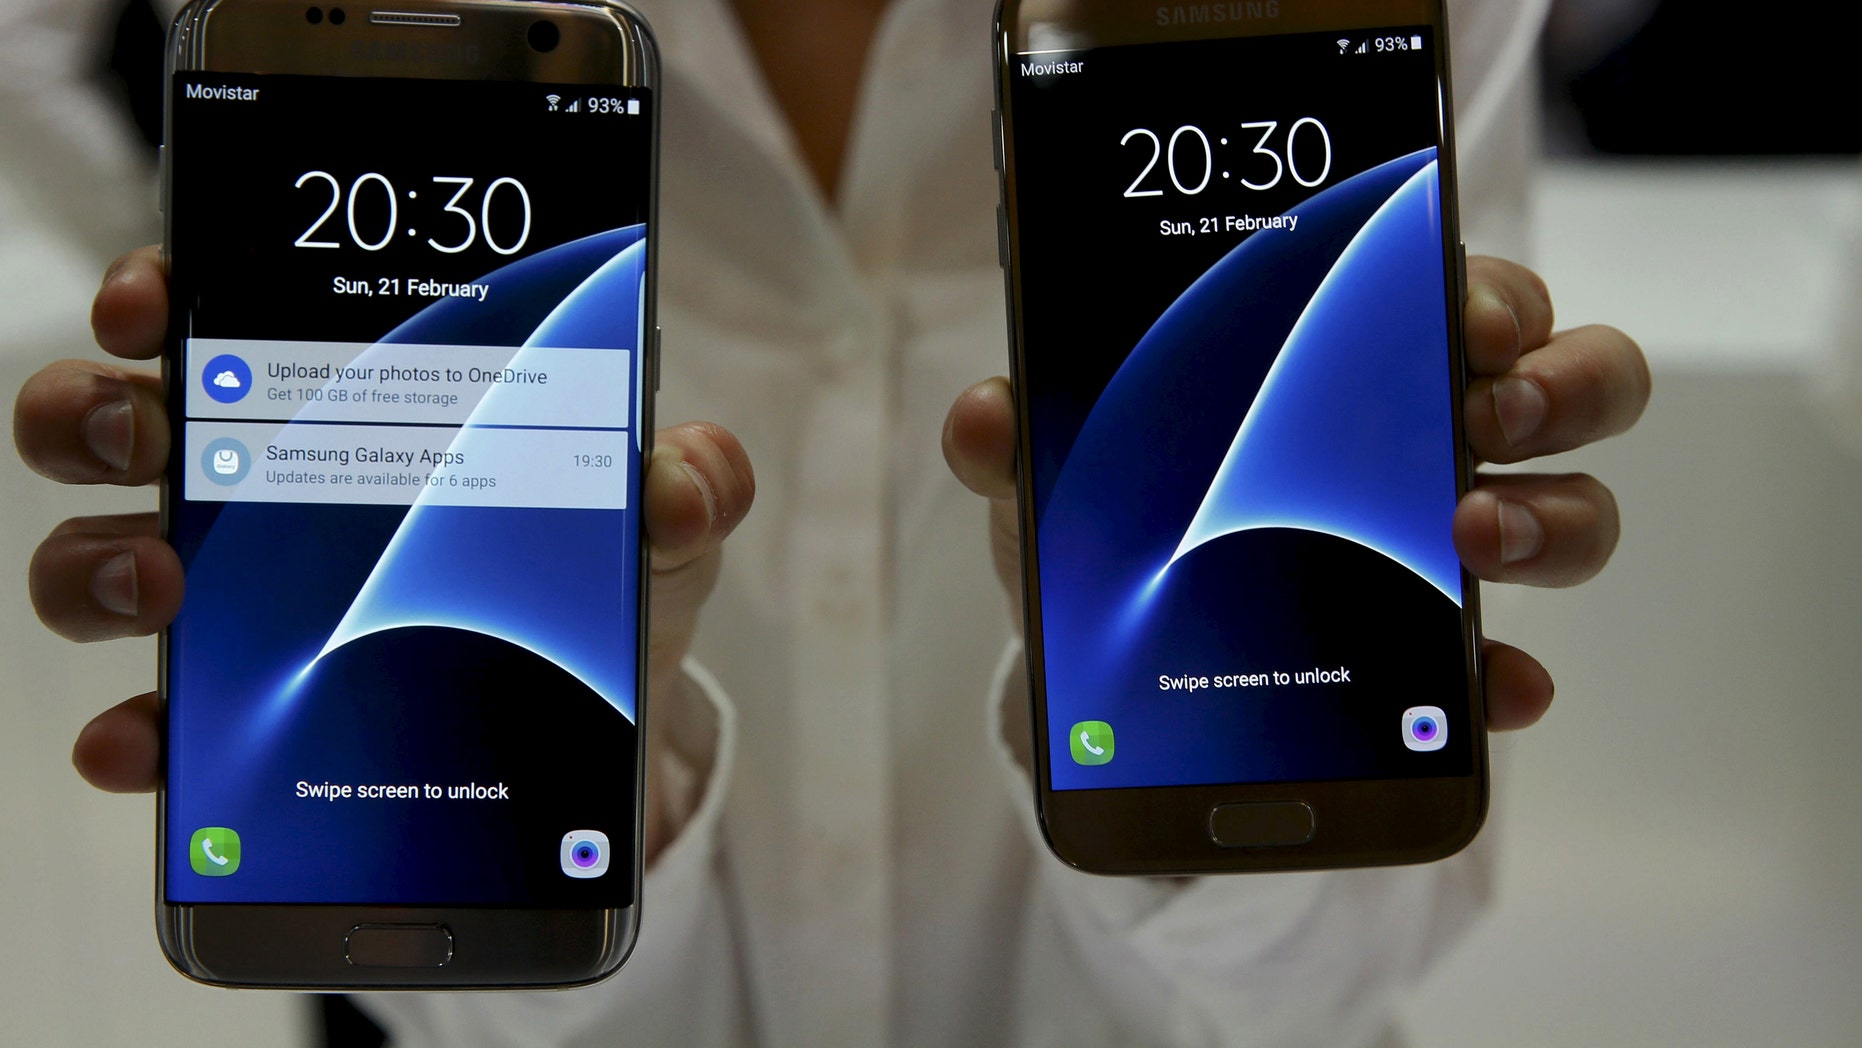 A woman displays new Samsung S7 (R) and S7 edge smartphones after their unveiling ceremony at the Mobile World Congress in Barcelona, Spain, Feb. 21, 2016. (REUTERS/Albert Gea)